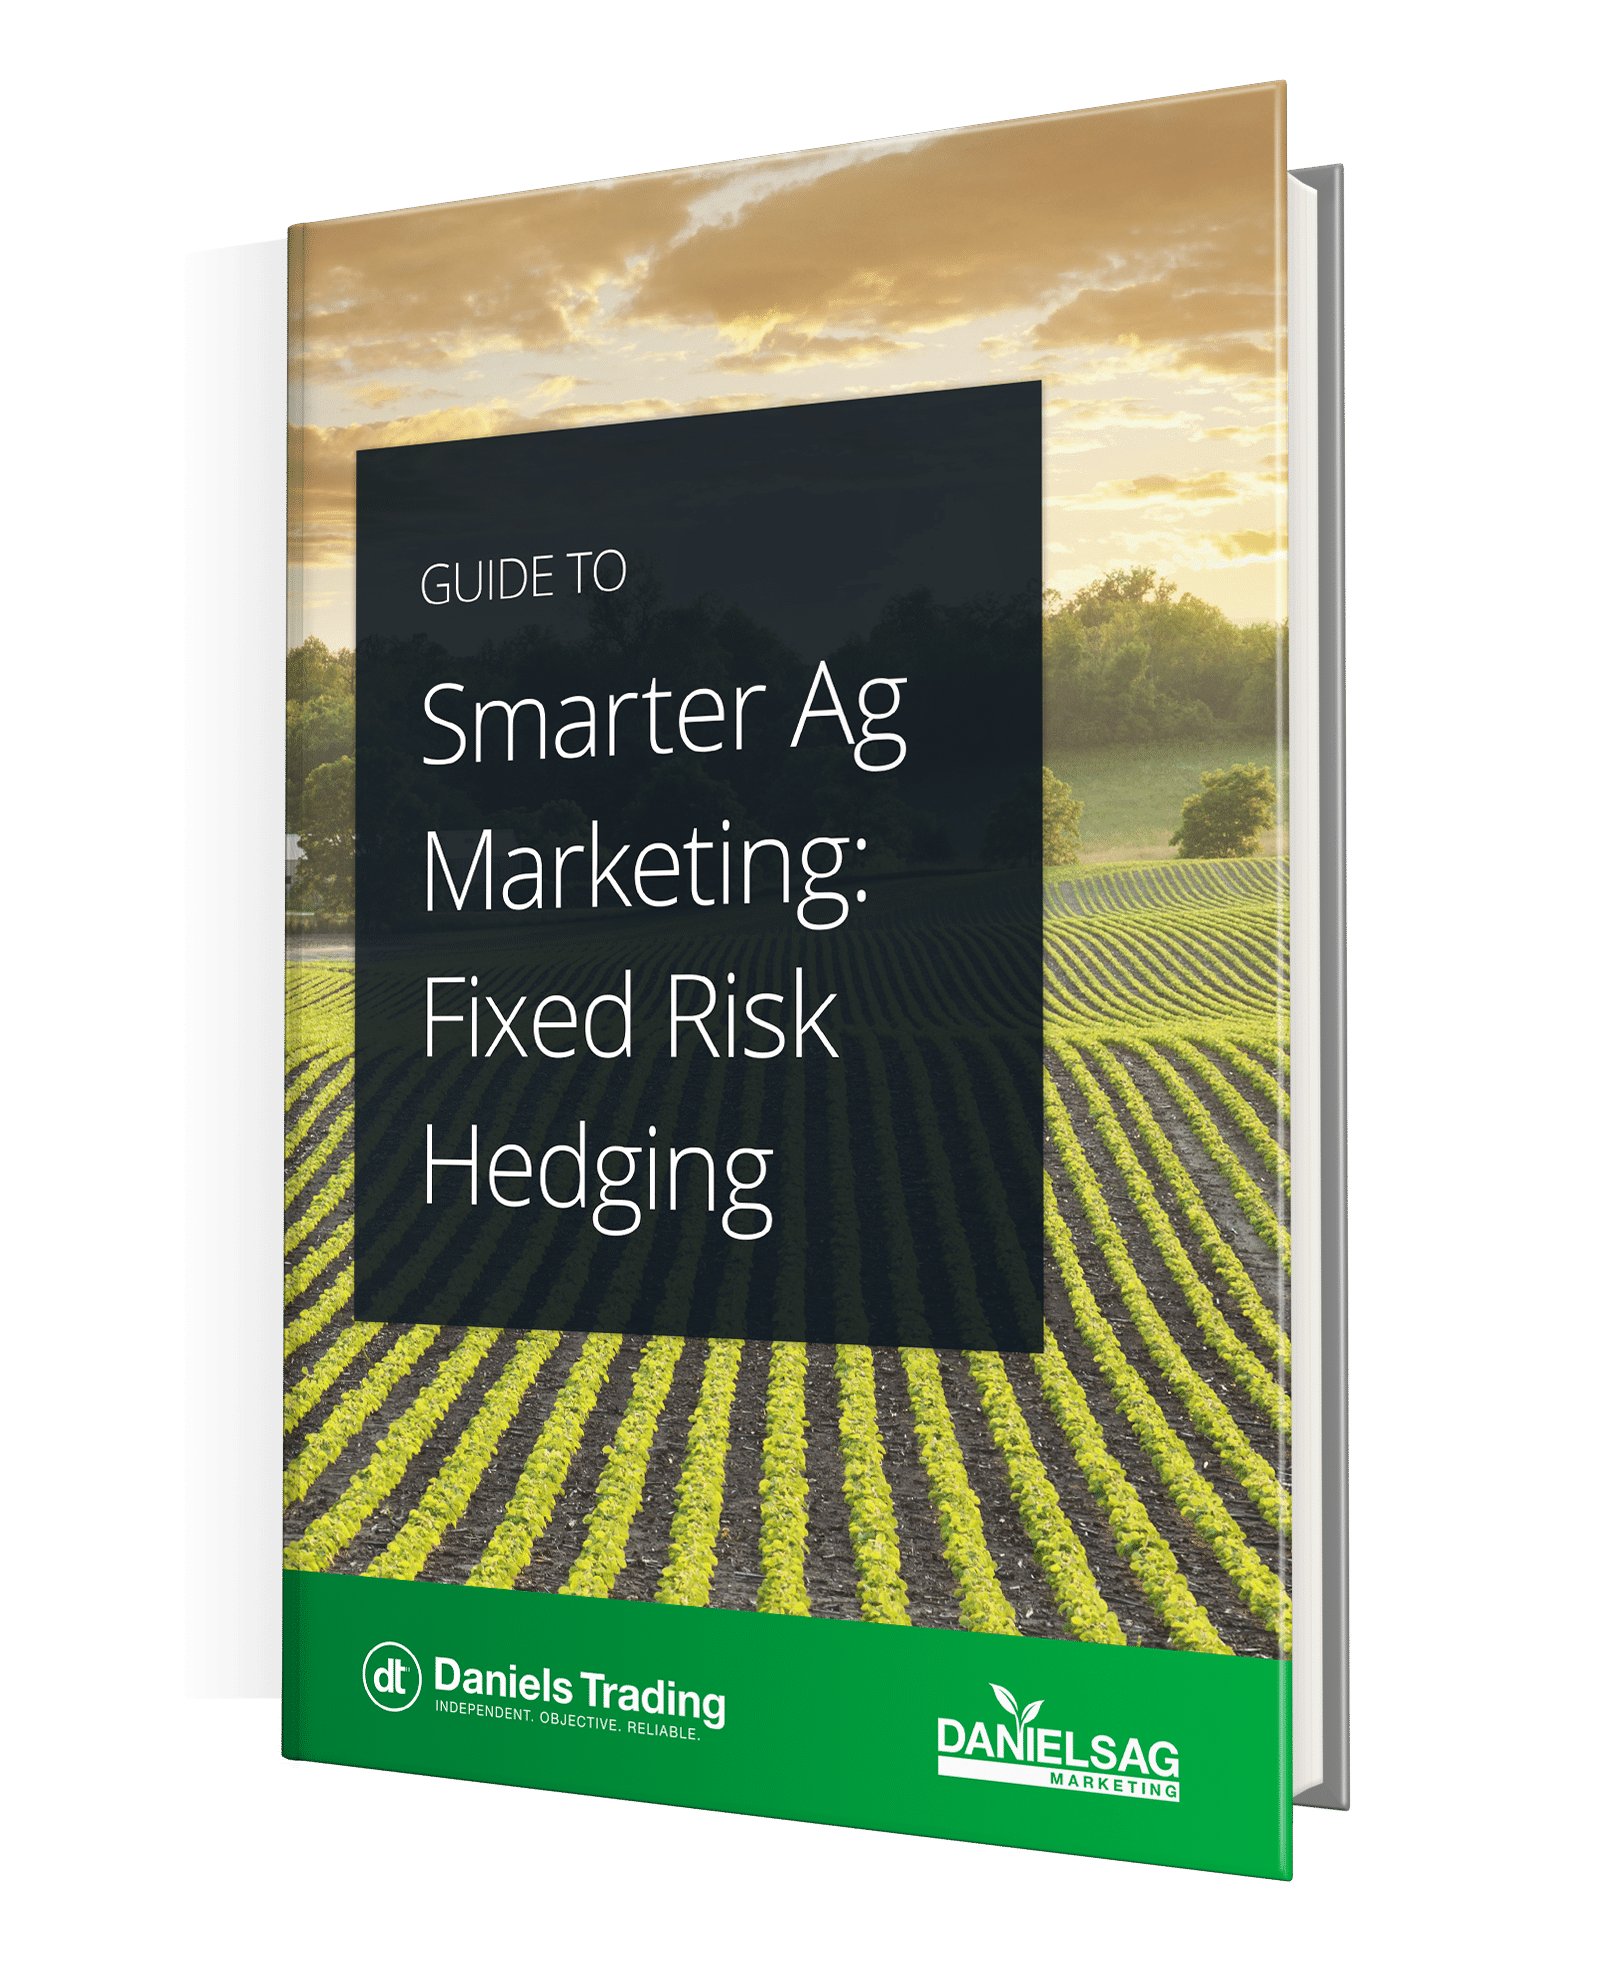 Guide to Smarter Ag Marketing: Fixed Risk Hedging Techniques